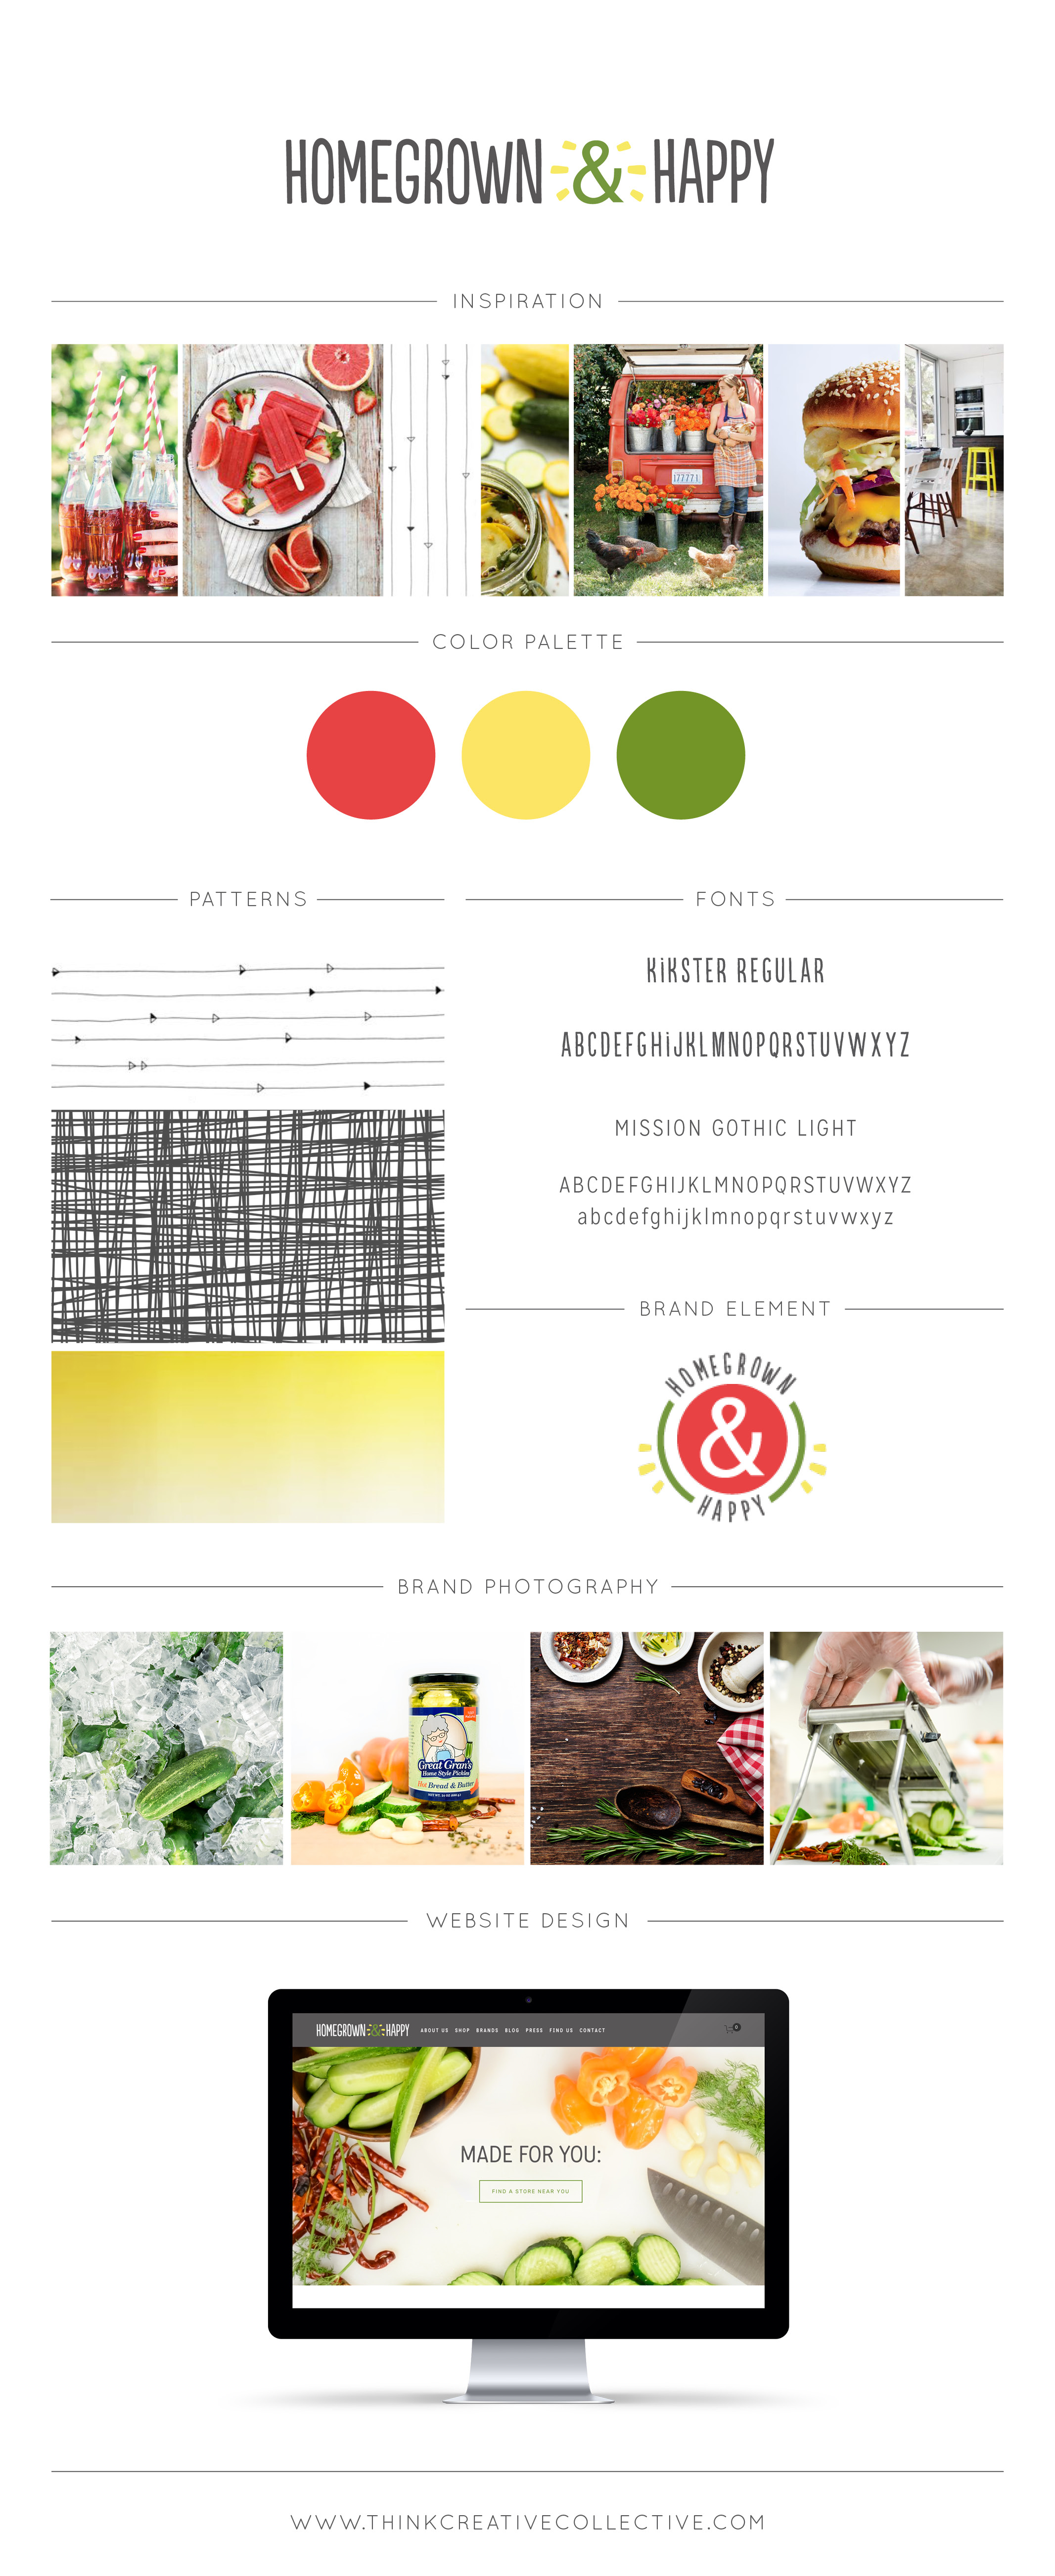 Homegrown & Happy Brand Style Board  |  Think Creative Collective